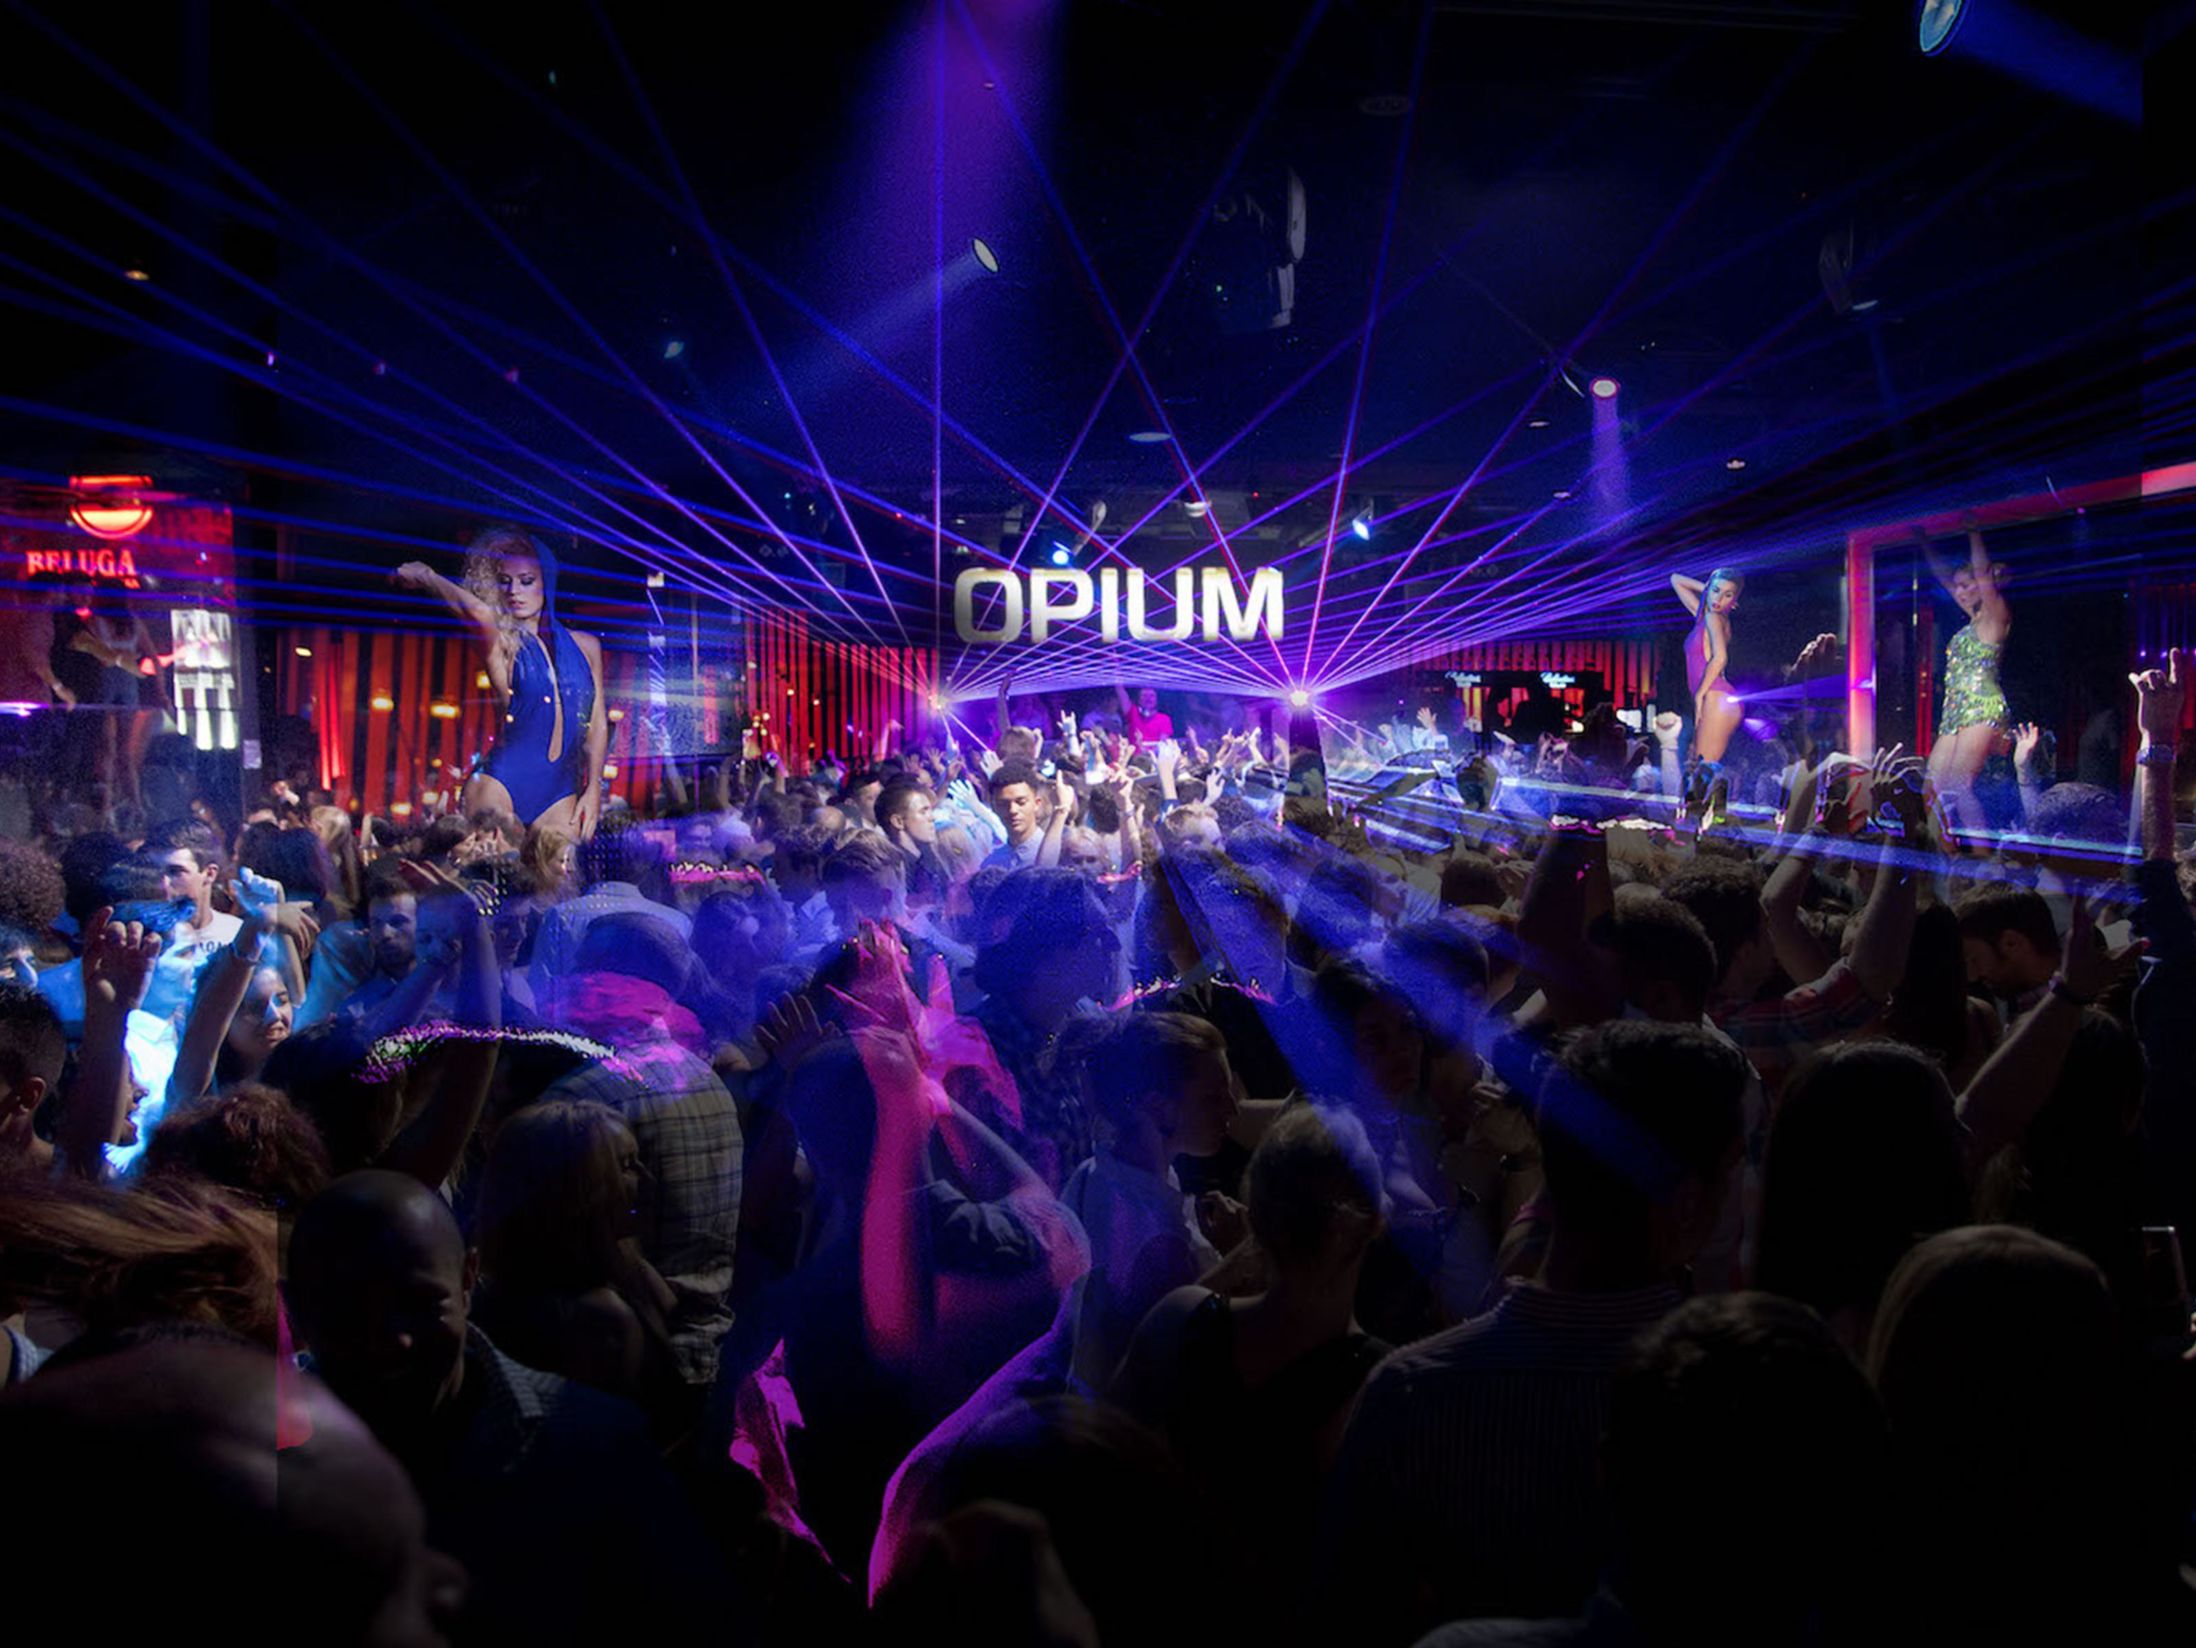 Best Clubs in Barcelona - Opium